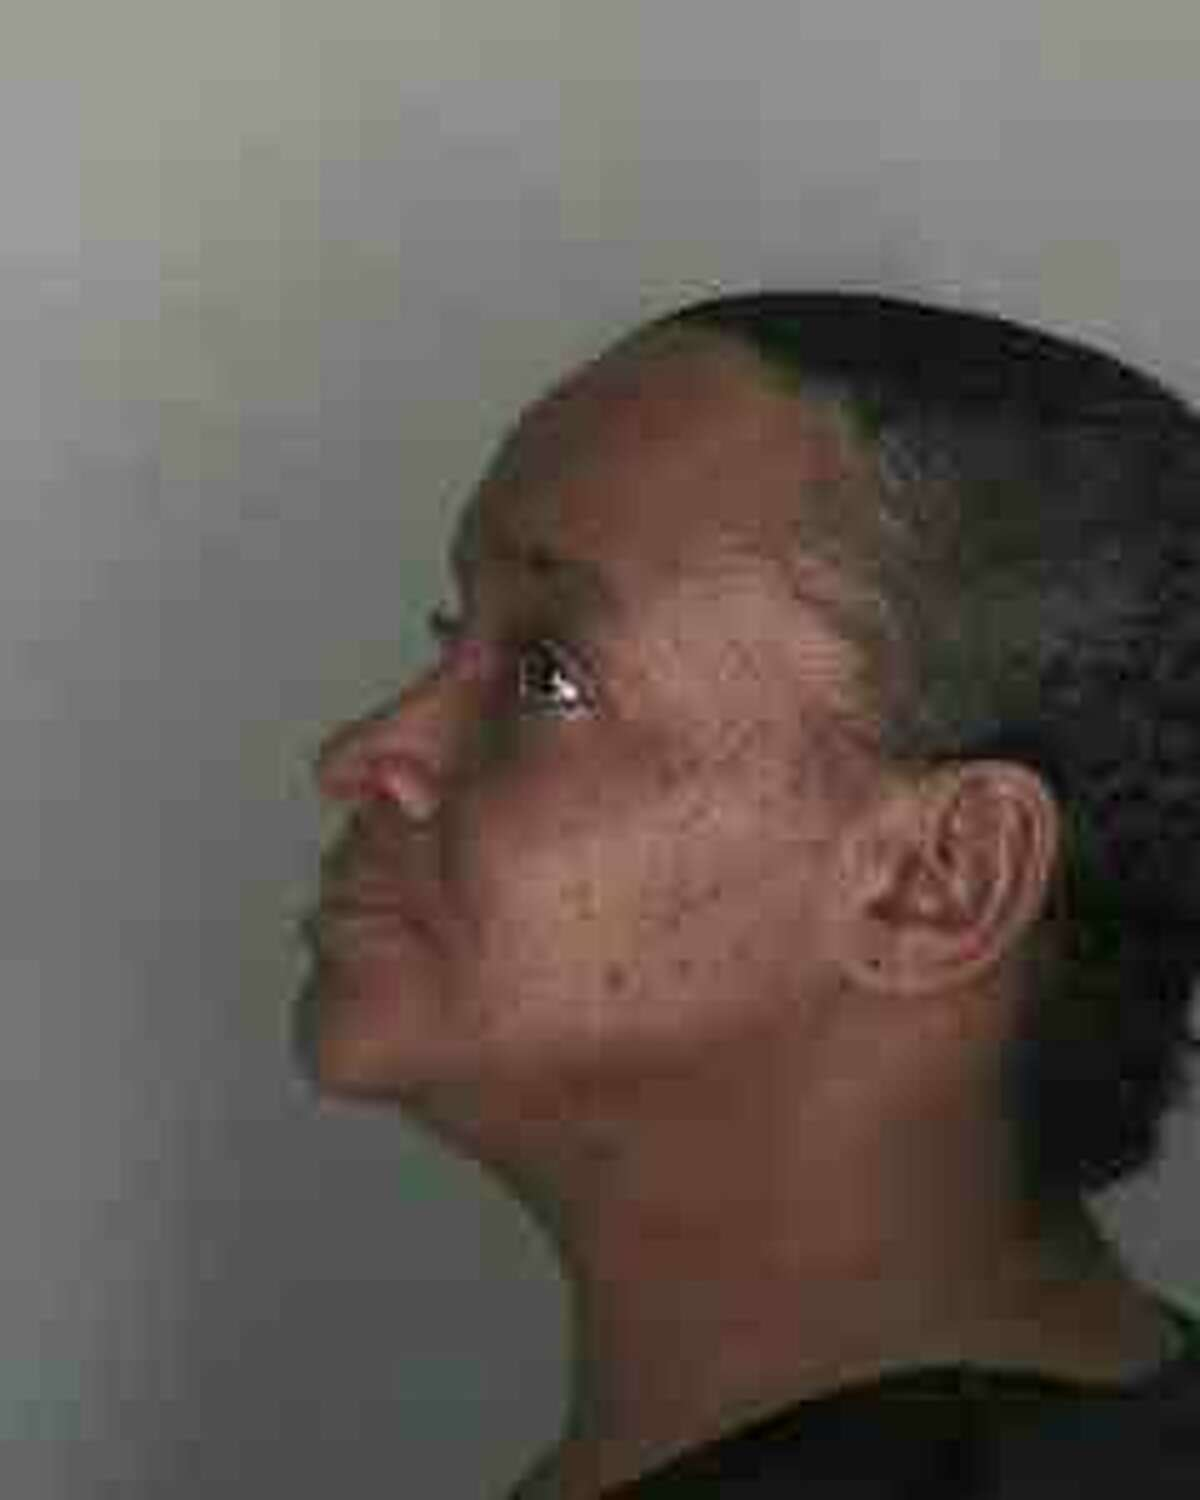 acqueline M. Smalls, 49, of Van Vranken Avenue, Schenectady was arrested Monday, Aug. 27, 2012 after allegedly stabbing her boyfriend, Adrian King, 51, to death. Smalls was charged with first-degree manslaughter. (Schenectady Police Department)